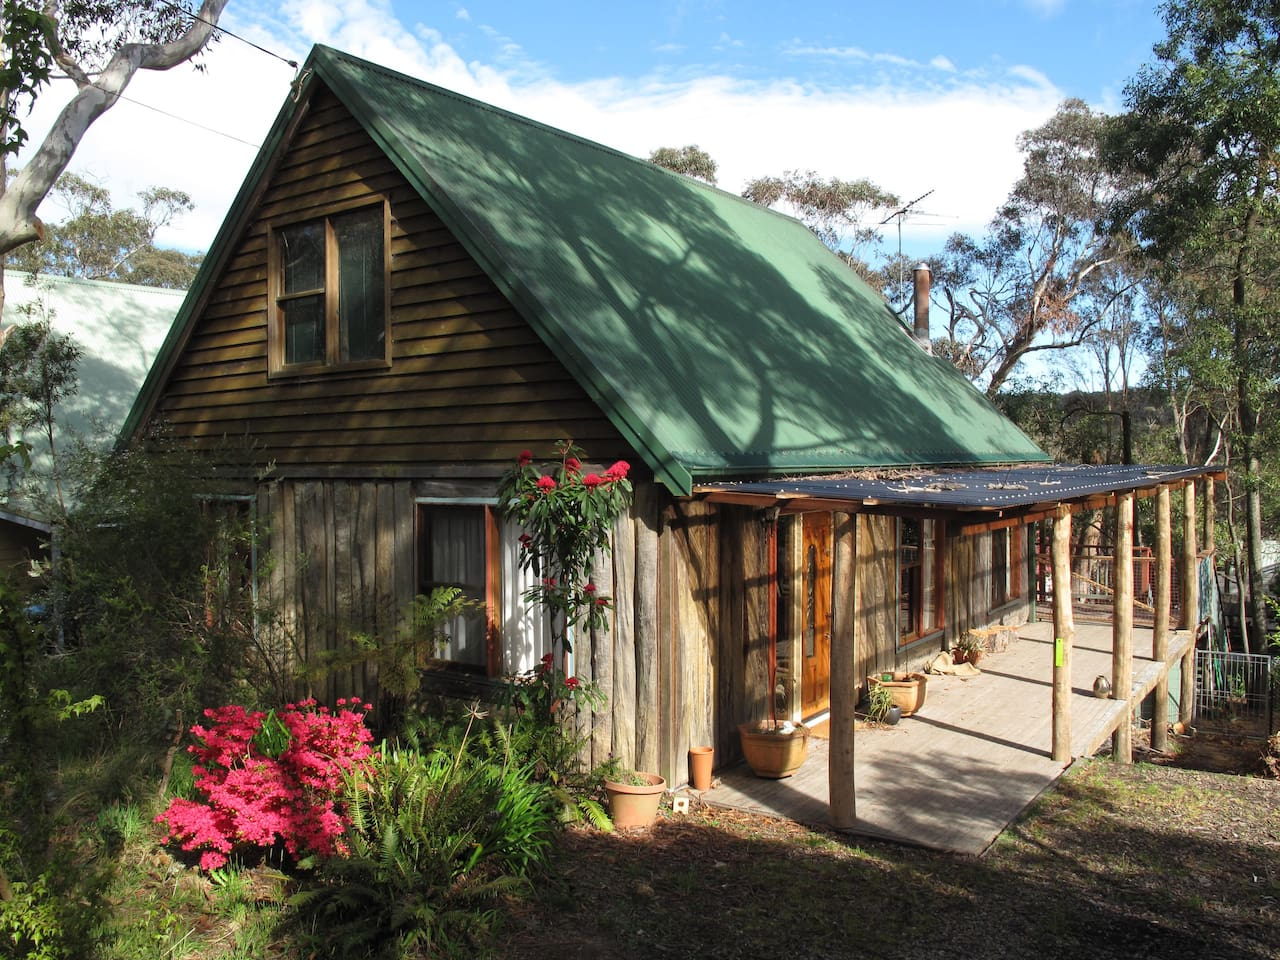 Our house as seen from the street. I built the verandah roof  from bush timbers to match the existing timber slab style construction.